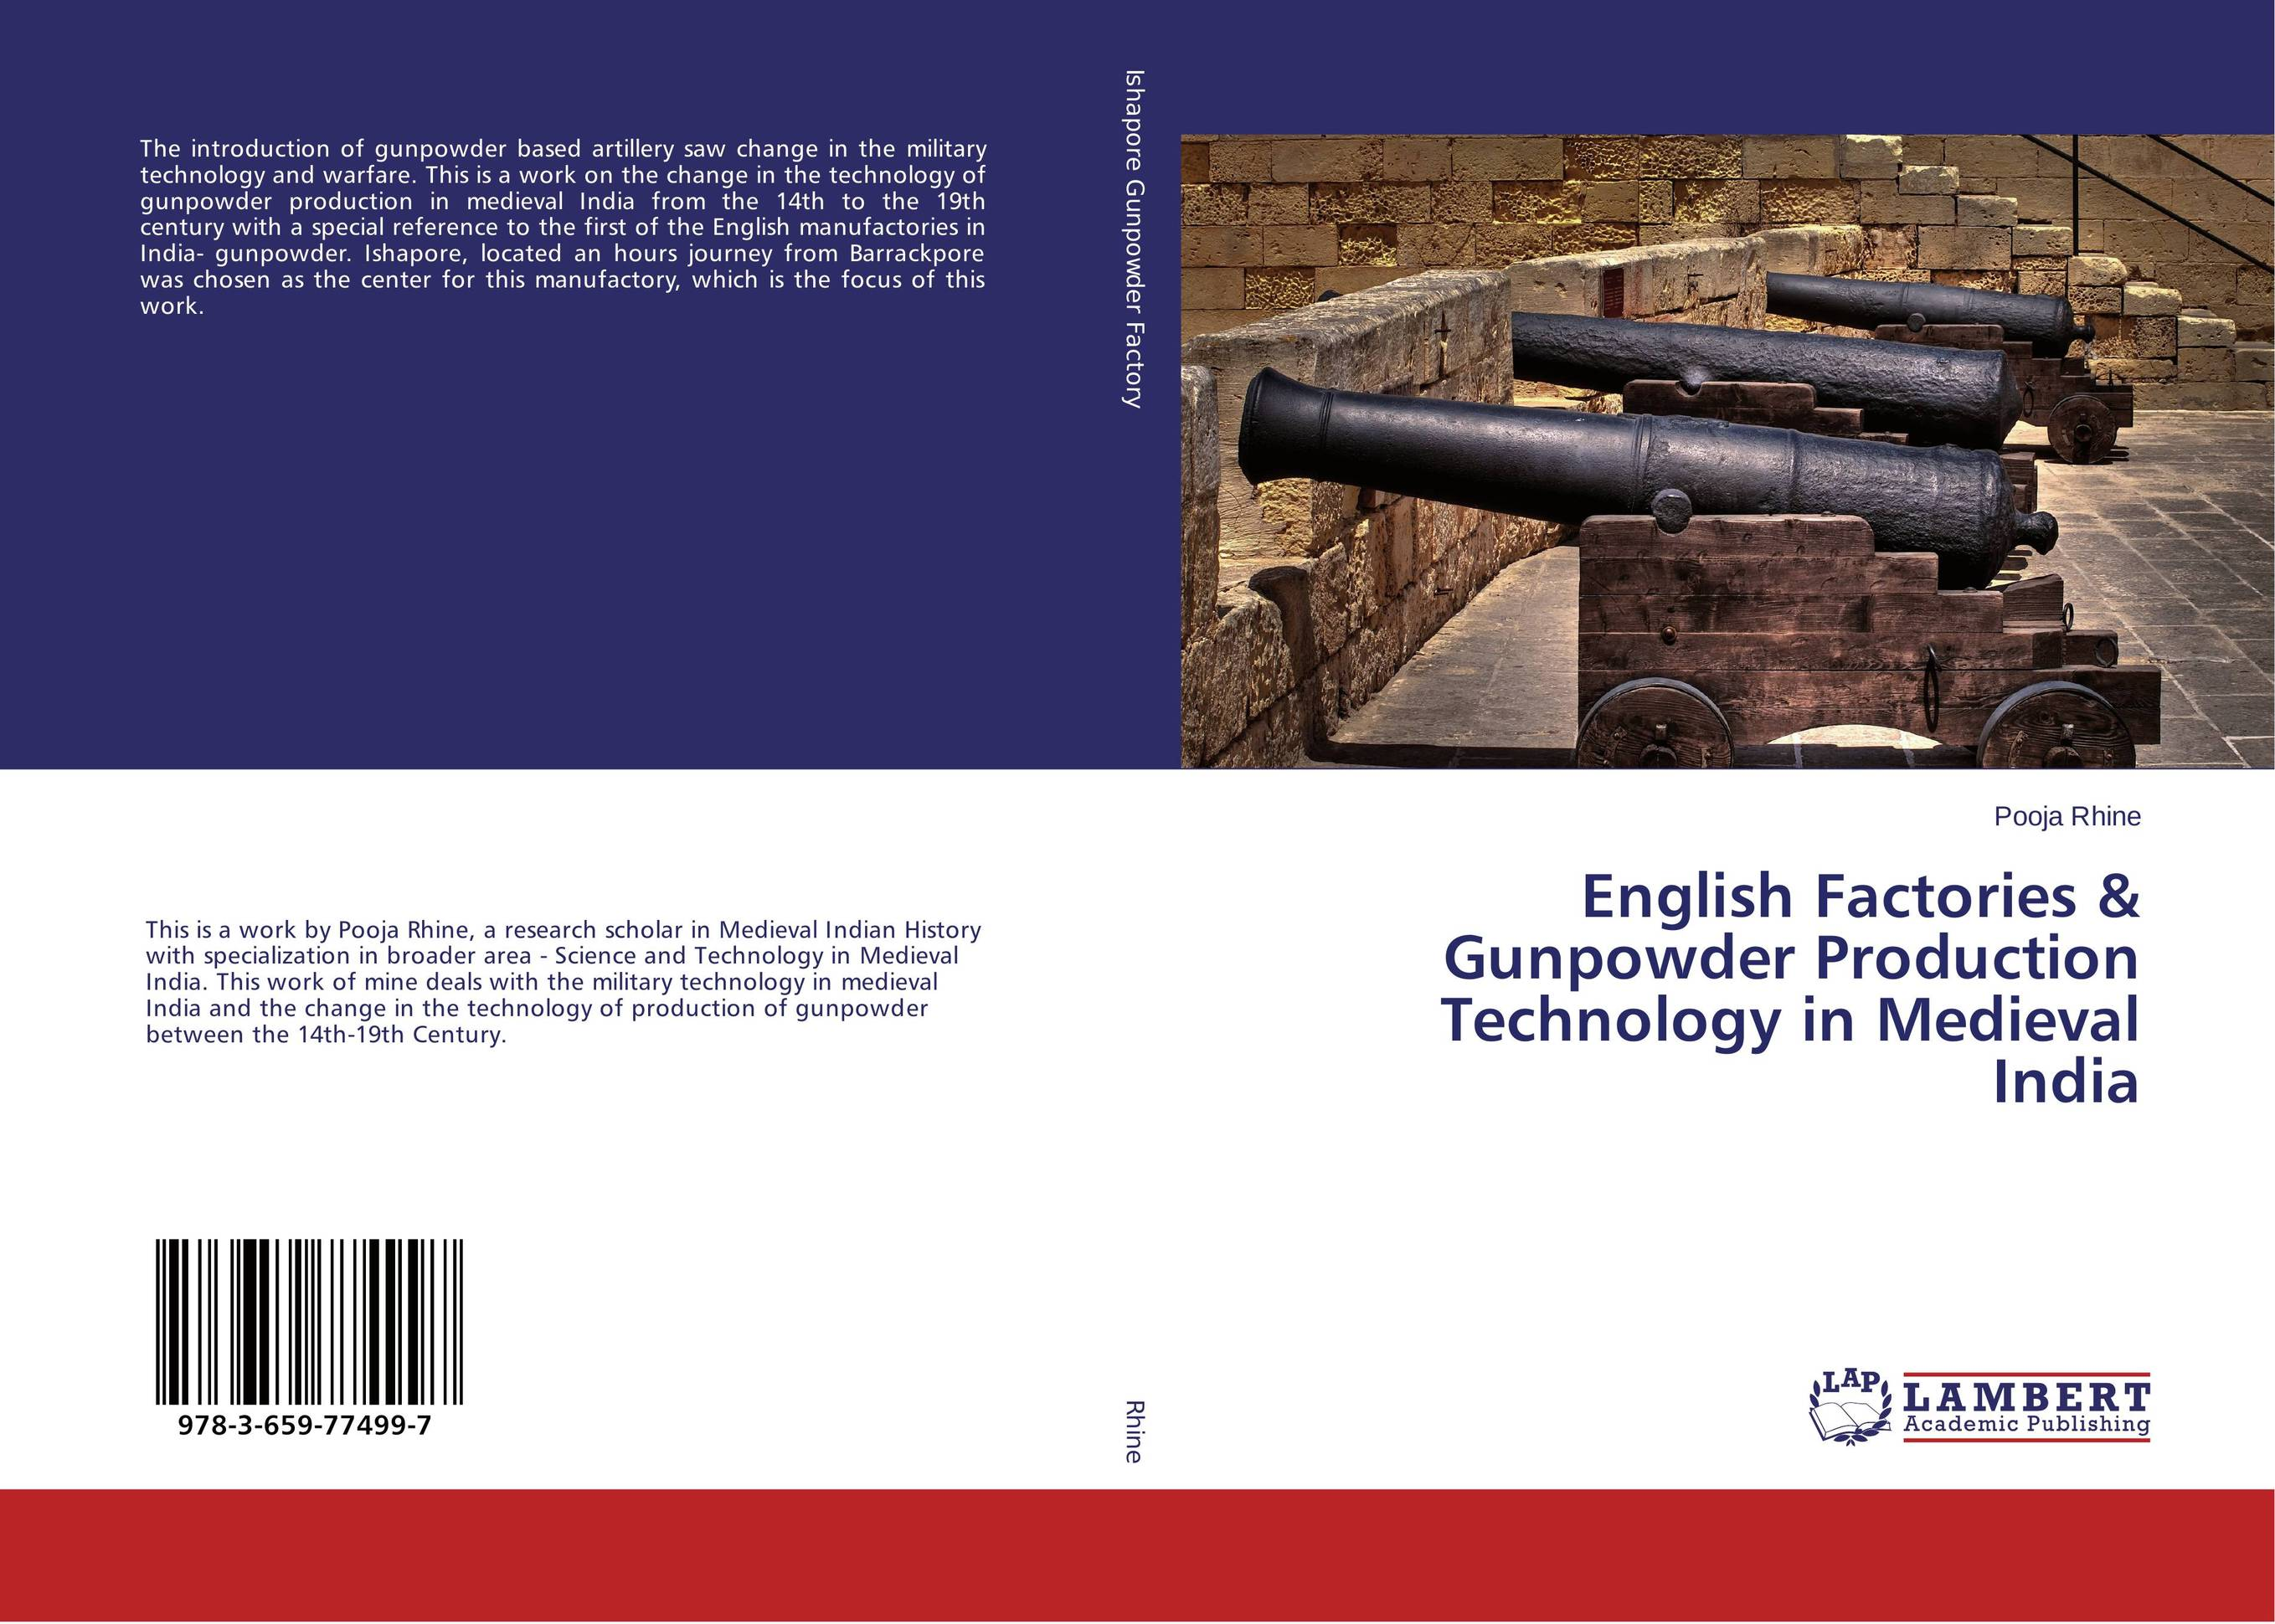 English Factories & Gunpowder Production Technology in Medieval India pramod kumar verma yield gap and constraints analysis in groundnut production